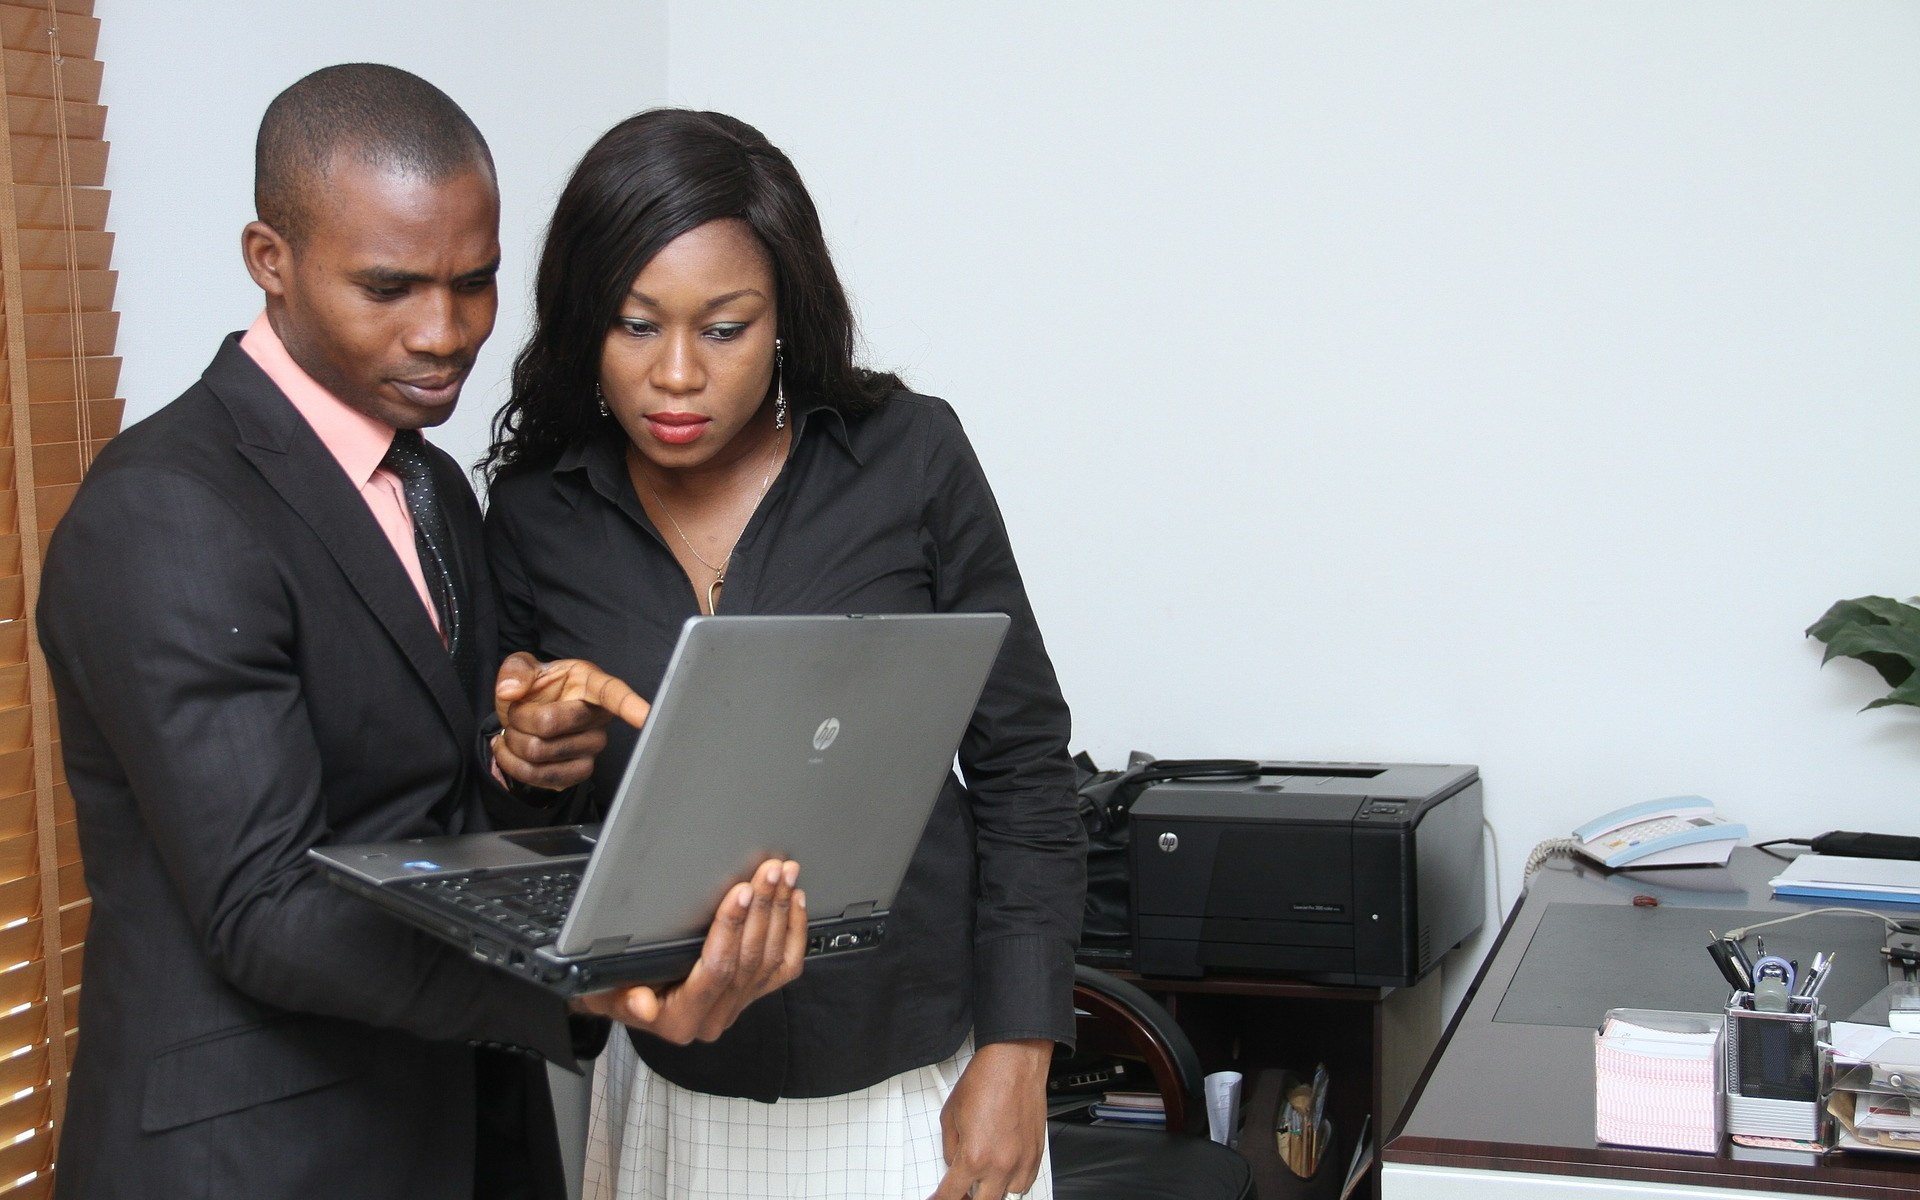 Man and woman looking at laptop in office